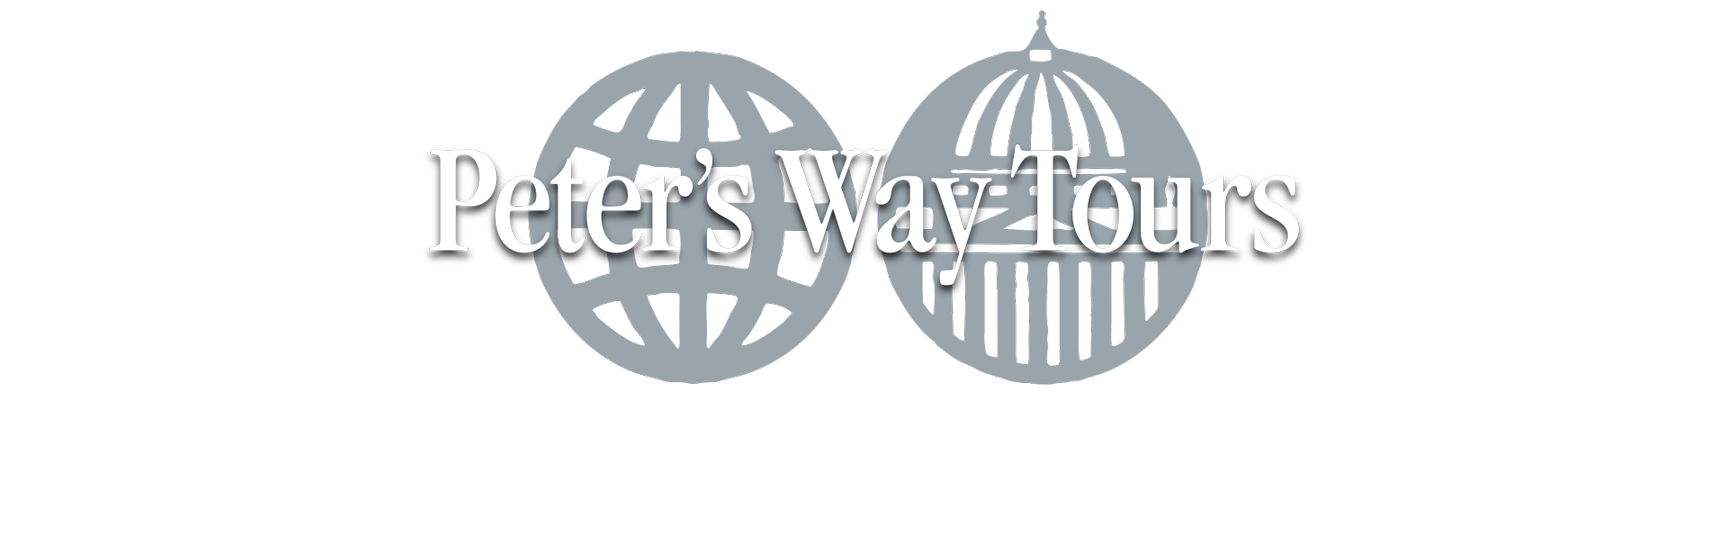 Peter's Way Tours